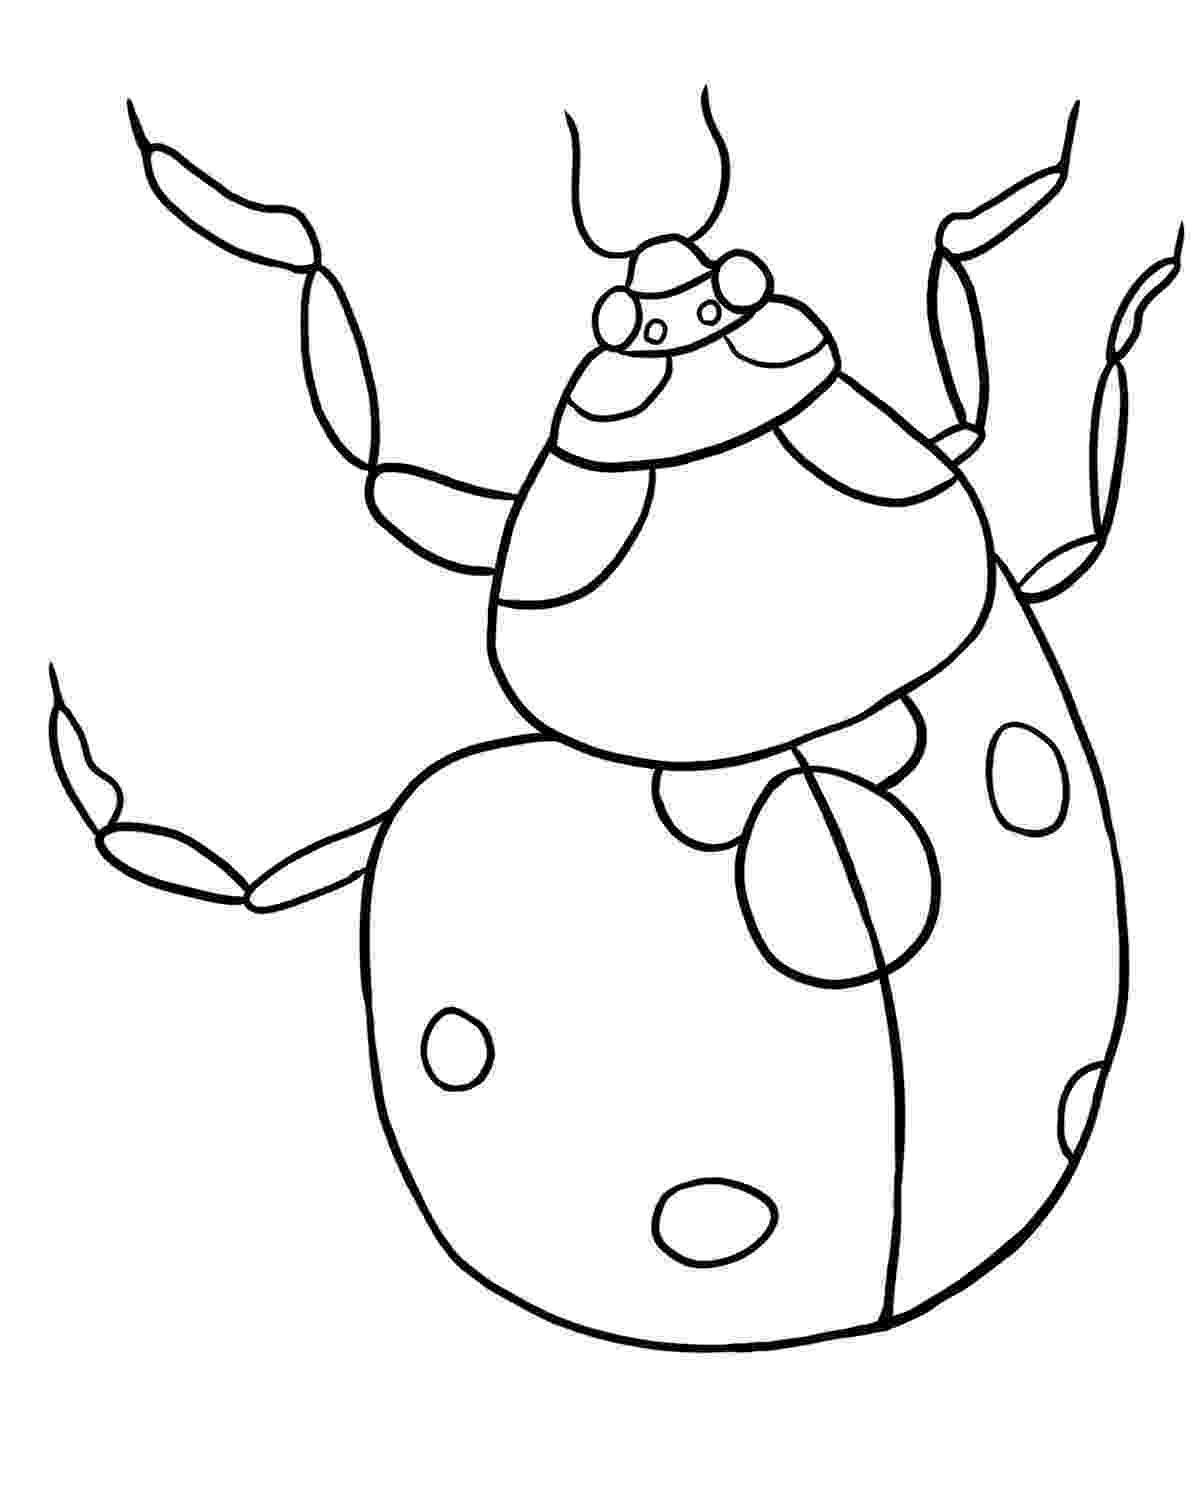 ladybird colouring page ladybug coloring pages to download and print for free colouring ladybird page 1 1